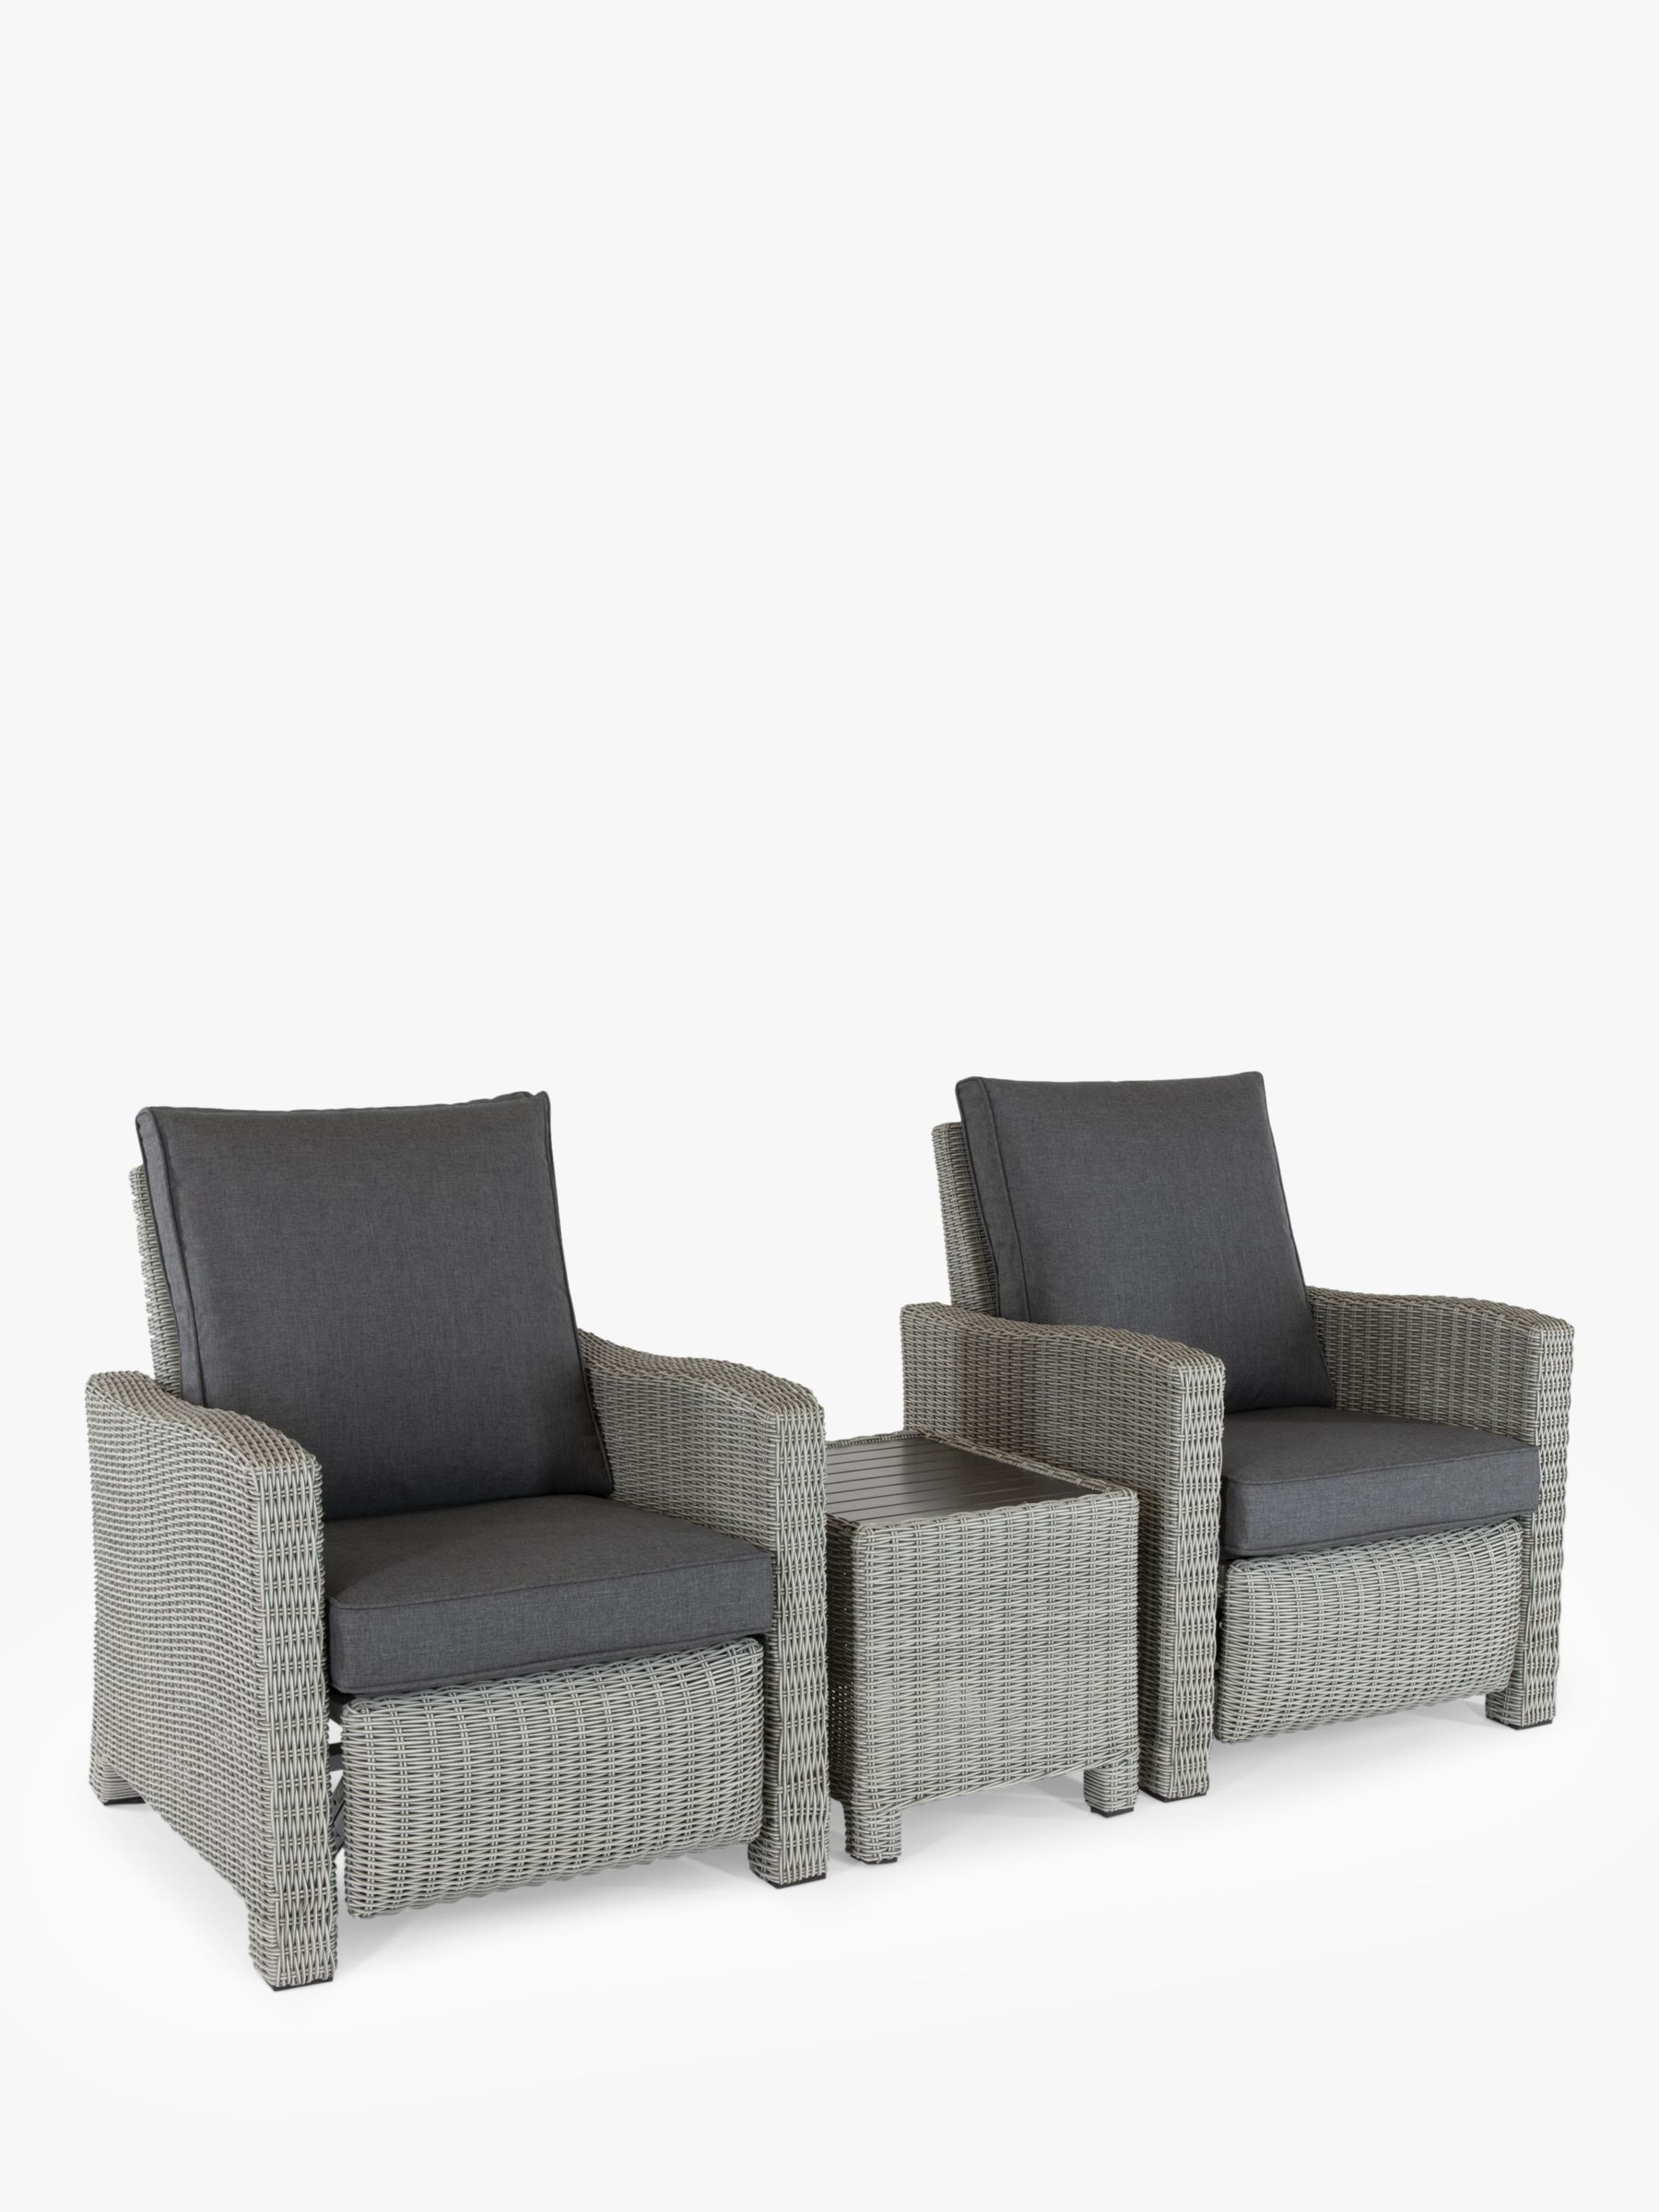 Kettler Palma 2 Seater Reclining Garden Chairs Side Table Lounging Set At John Lewis Partners